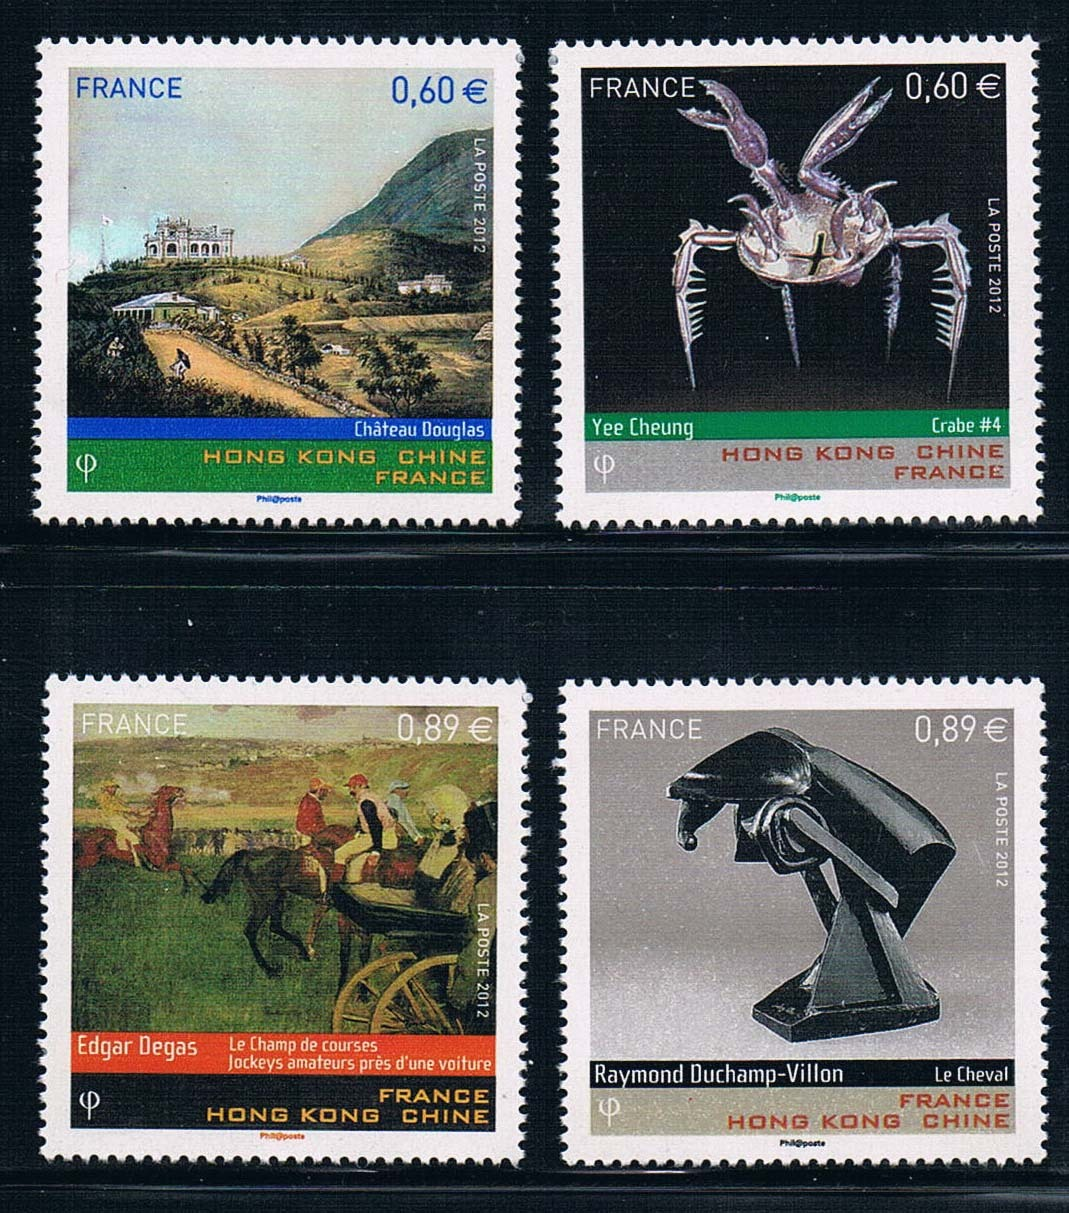 FR0843 France 2012 and China Hongkong painting art stamps 4 new 0528 сковорода vitesse vs 2514 nature collection 26см